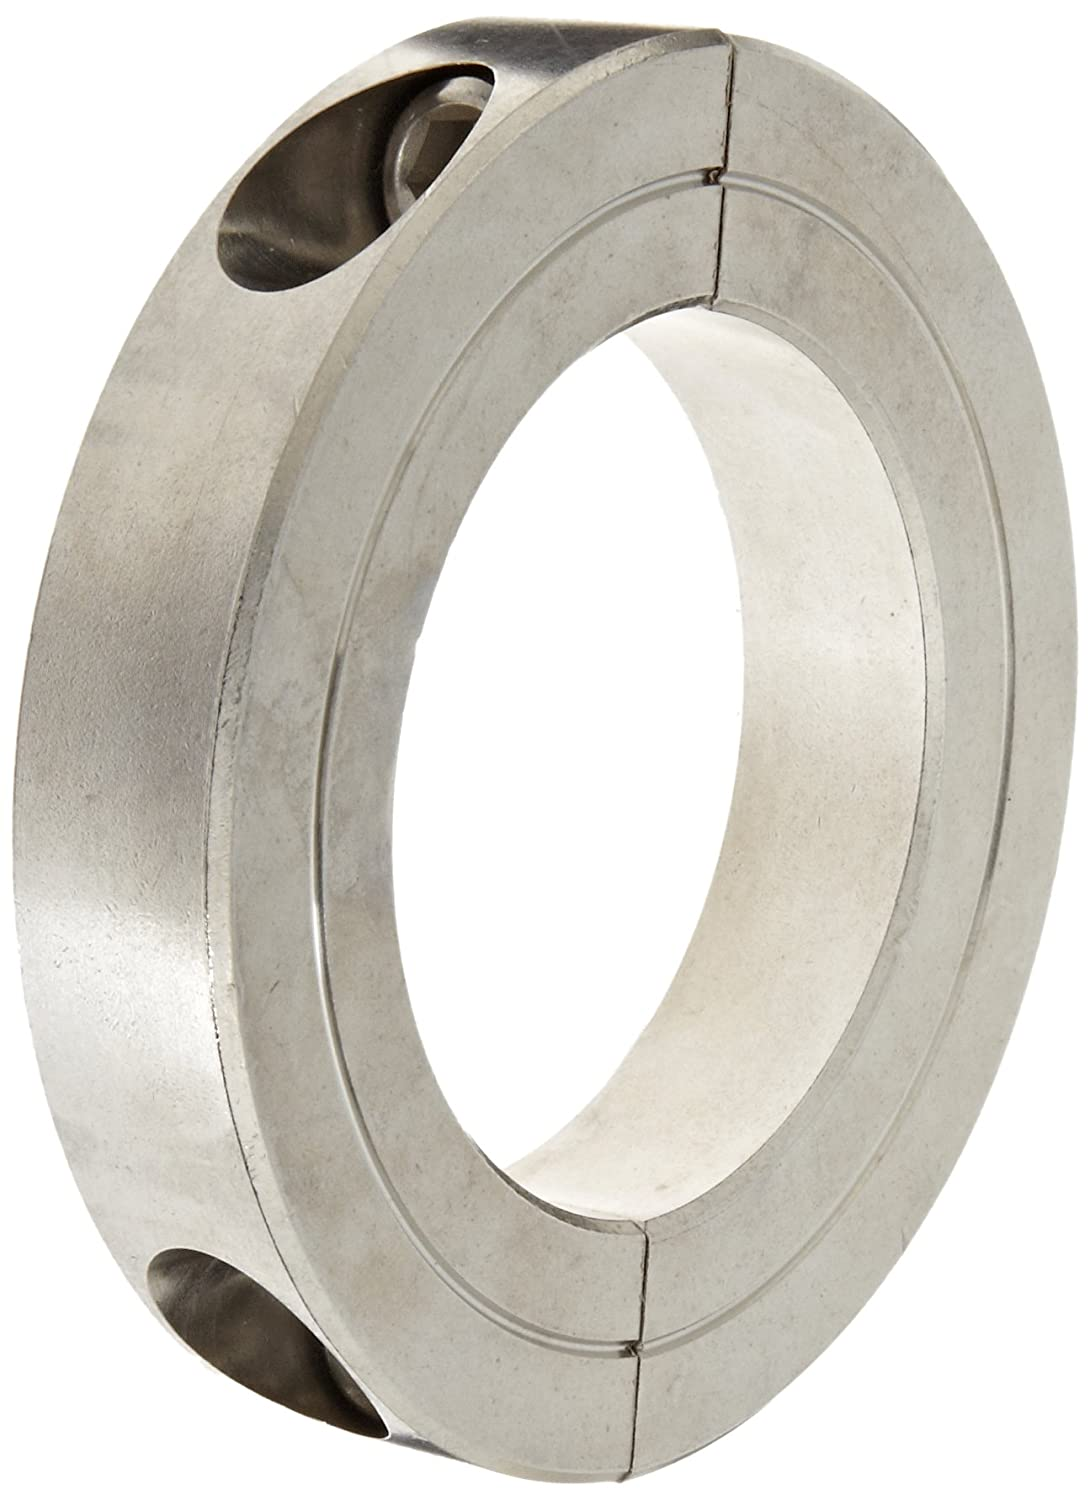 Climax Metal H2C-250-S T303 Recessed Screw Clamping Collar, Two Piece, Stainless Steel, 2-1/2 Bore Size, 4 OD, With 3/8-24 x 1 1/4 Set Screw 1 set 8 219mm od sanitary pipe weld ferrule tri clamp silicone gasket stainless steel ss304 swt 219